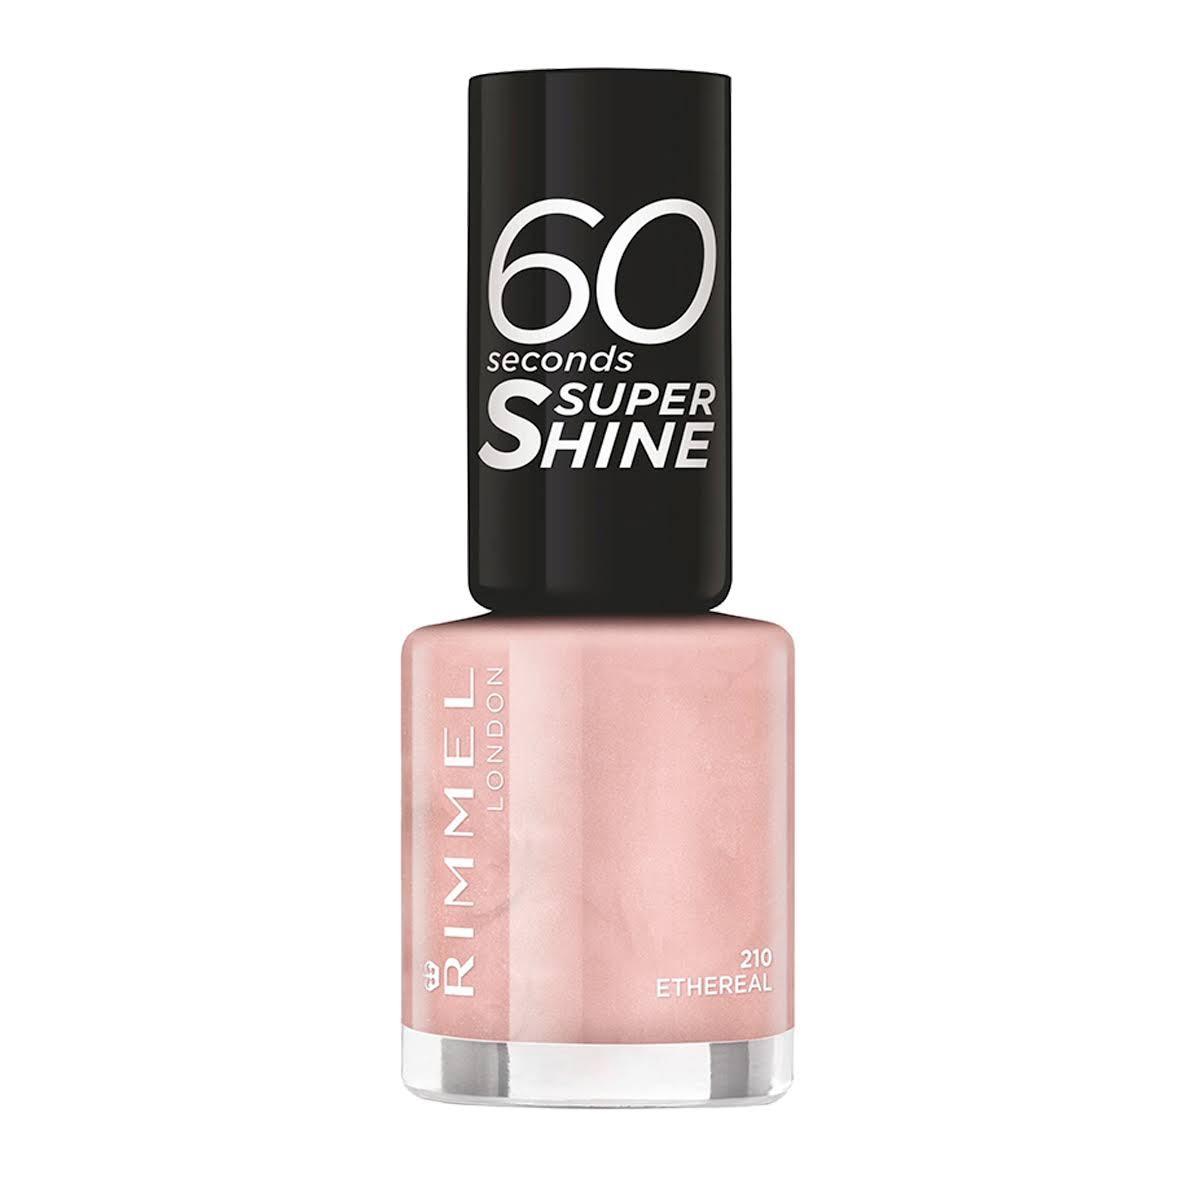 Rimmel 60 Seconds Super Shine Nail Polish - 20 Etheral, 8ml